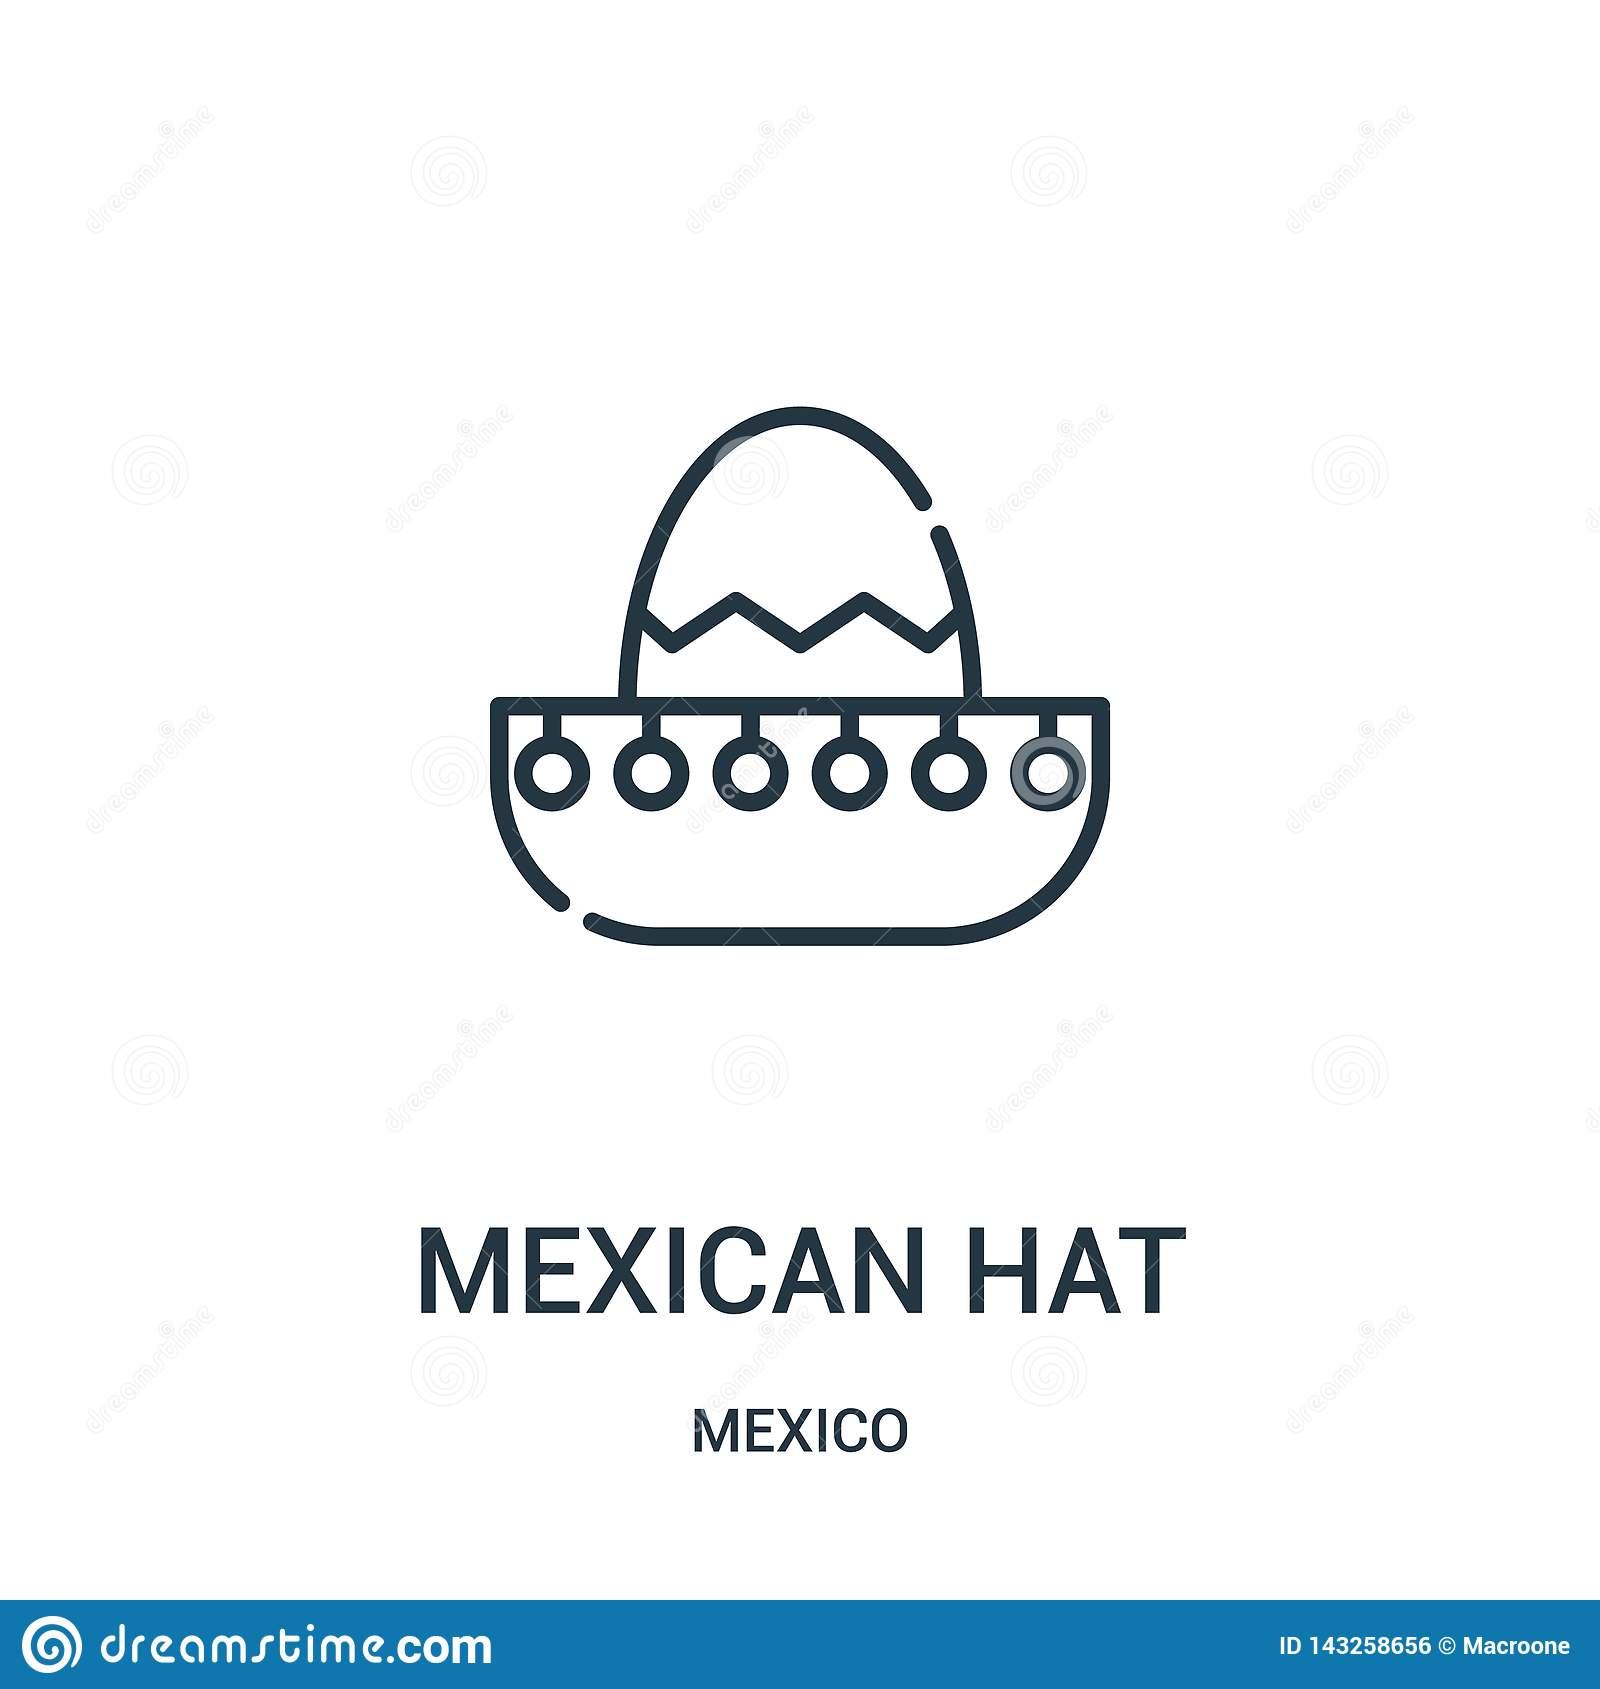 mexican hat icon vector from mexico collection. Thin line mexican hat outline icon vector illustration